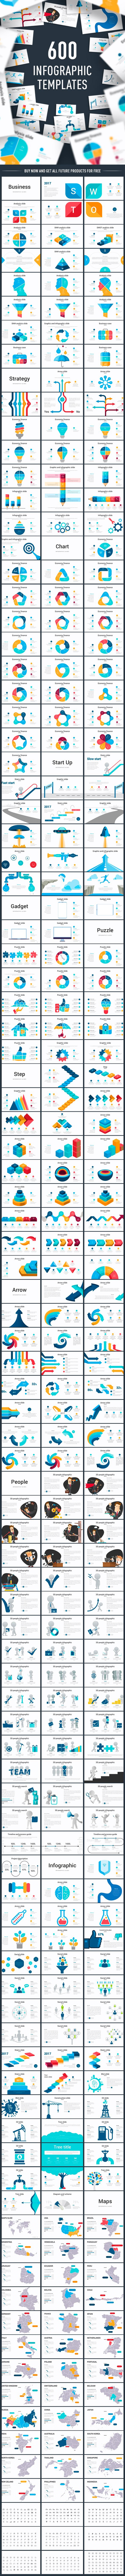 Pack infographic slides free update creative powerpoint pack infographic slides free update creative powerpoint templates download here toneelgroepblik Image collections